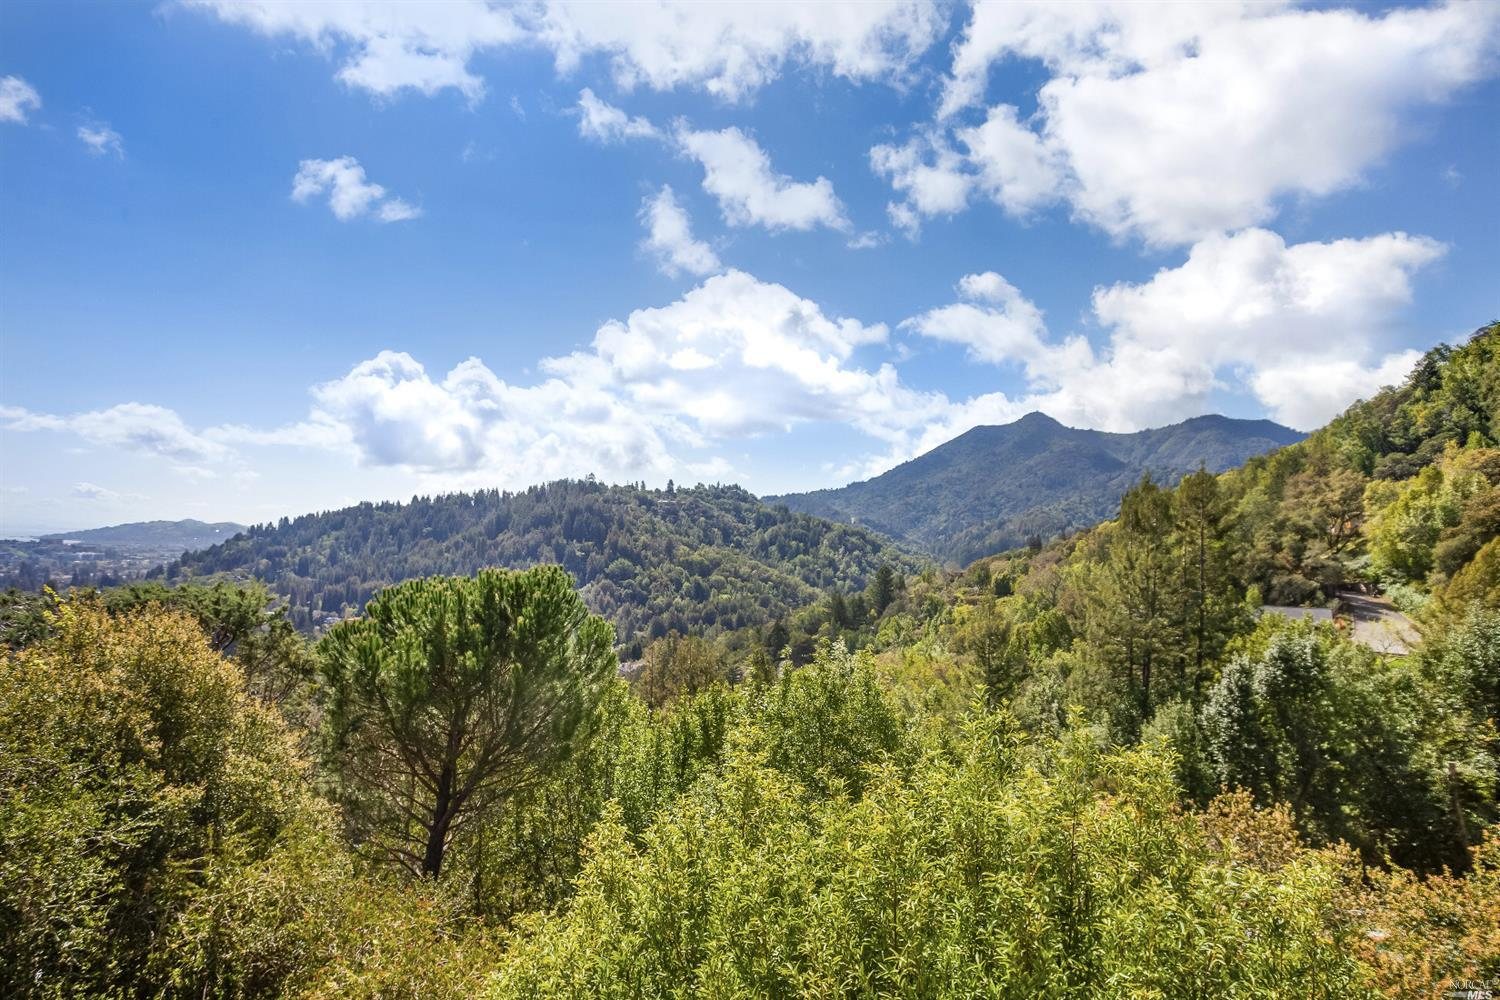 Captivating Mt. Tam and Bay views set the stage for this sun-filled, mid-century modern home in the highly desirable Seminary Area of San Anselmo. Located in a private setting at the end of a cul-de-sac and near trails galore!  Approximately 3.5 minutes to downtown San Anselmo, but a world away - feels like a vacation retreat! In addition to the 3BR + office, there is a separate guest room with a kitchenette and ensuite bath accessible from the lower level.    Best route:  Bolinas Road, to Oak Avenue, to South Oak.